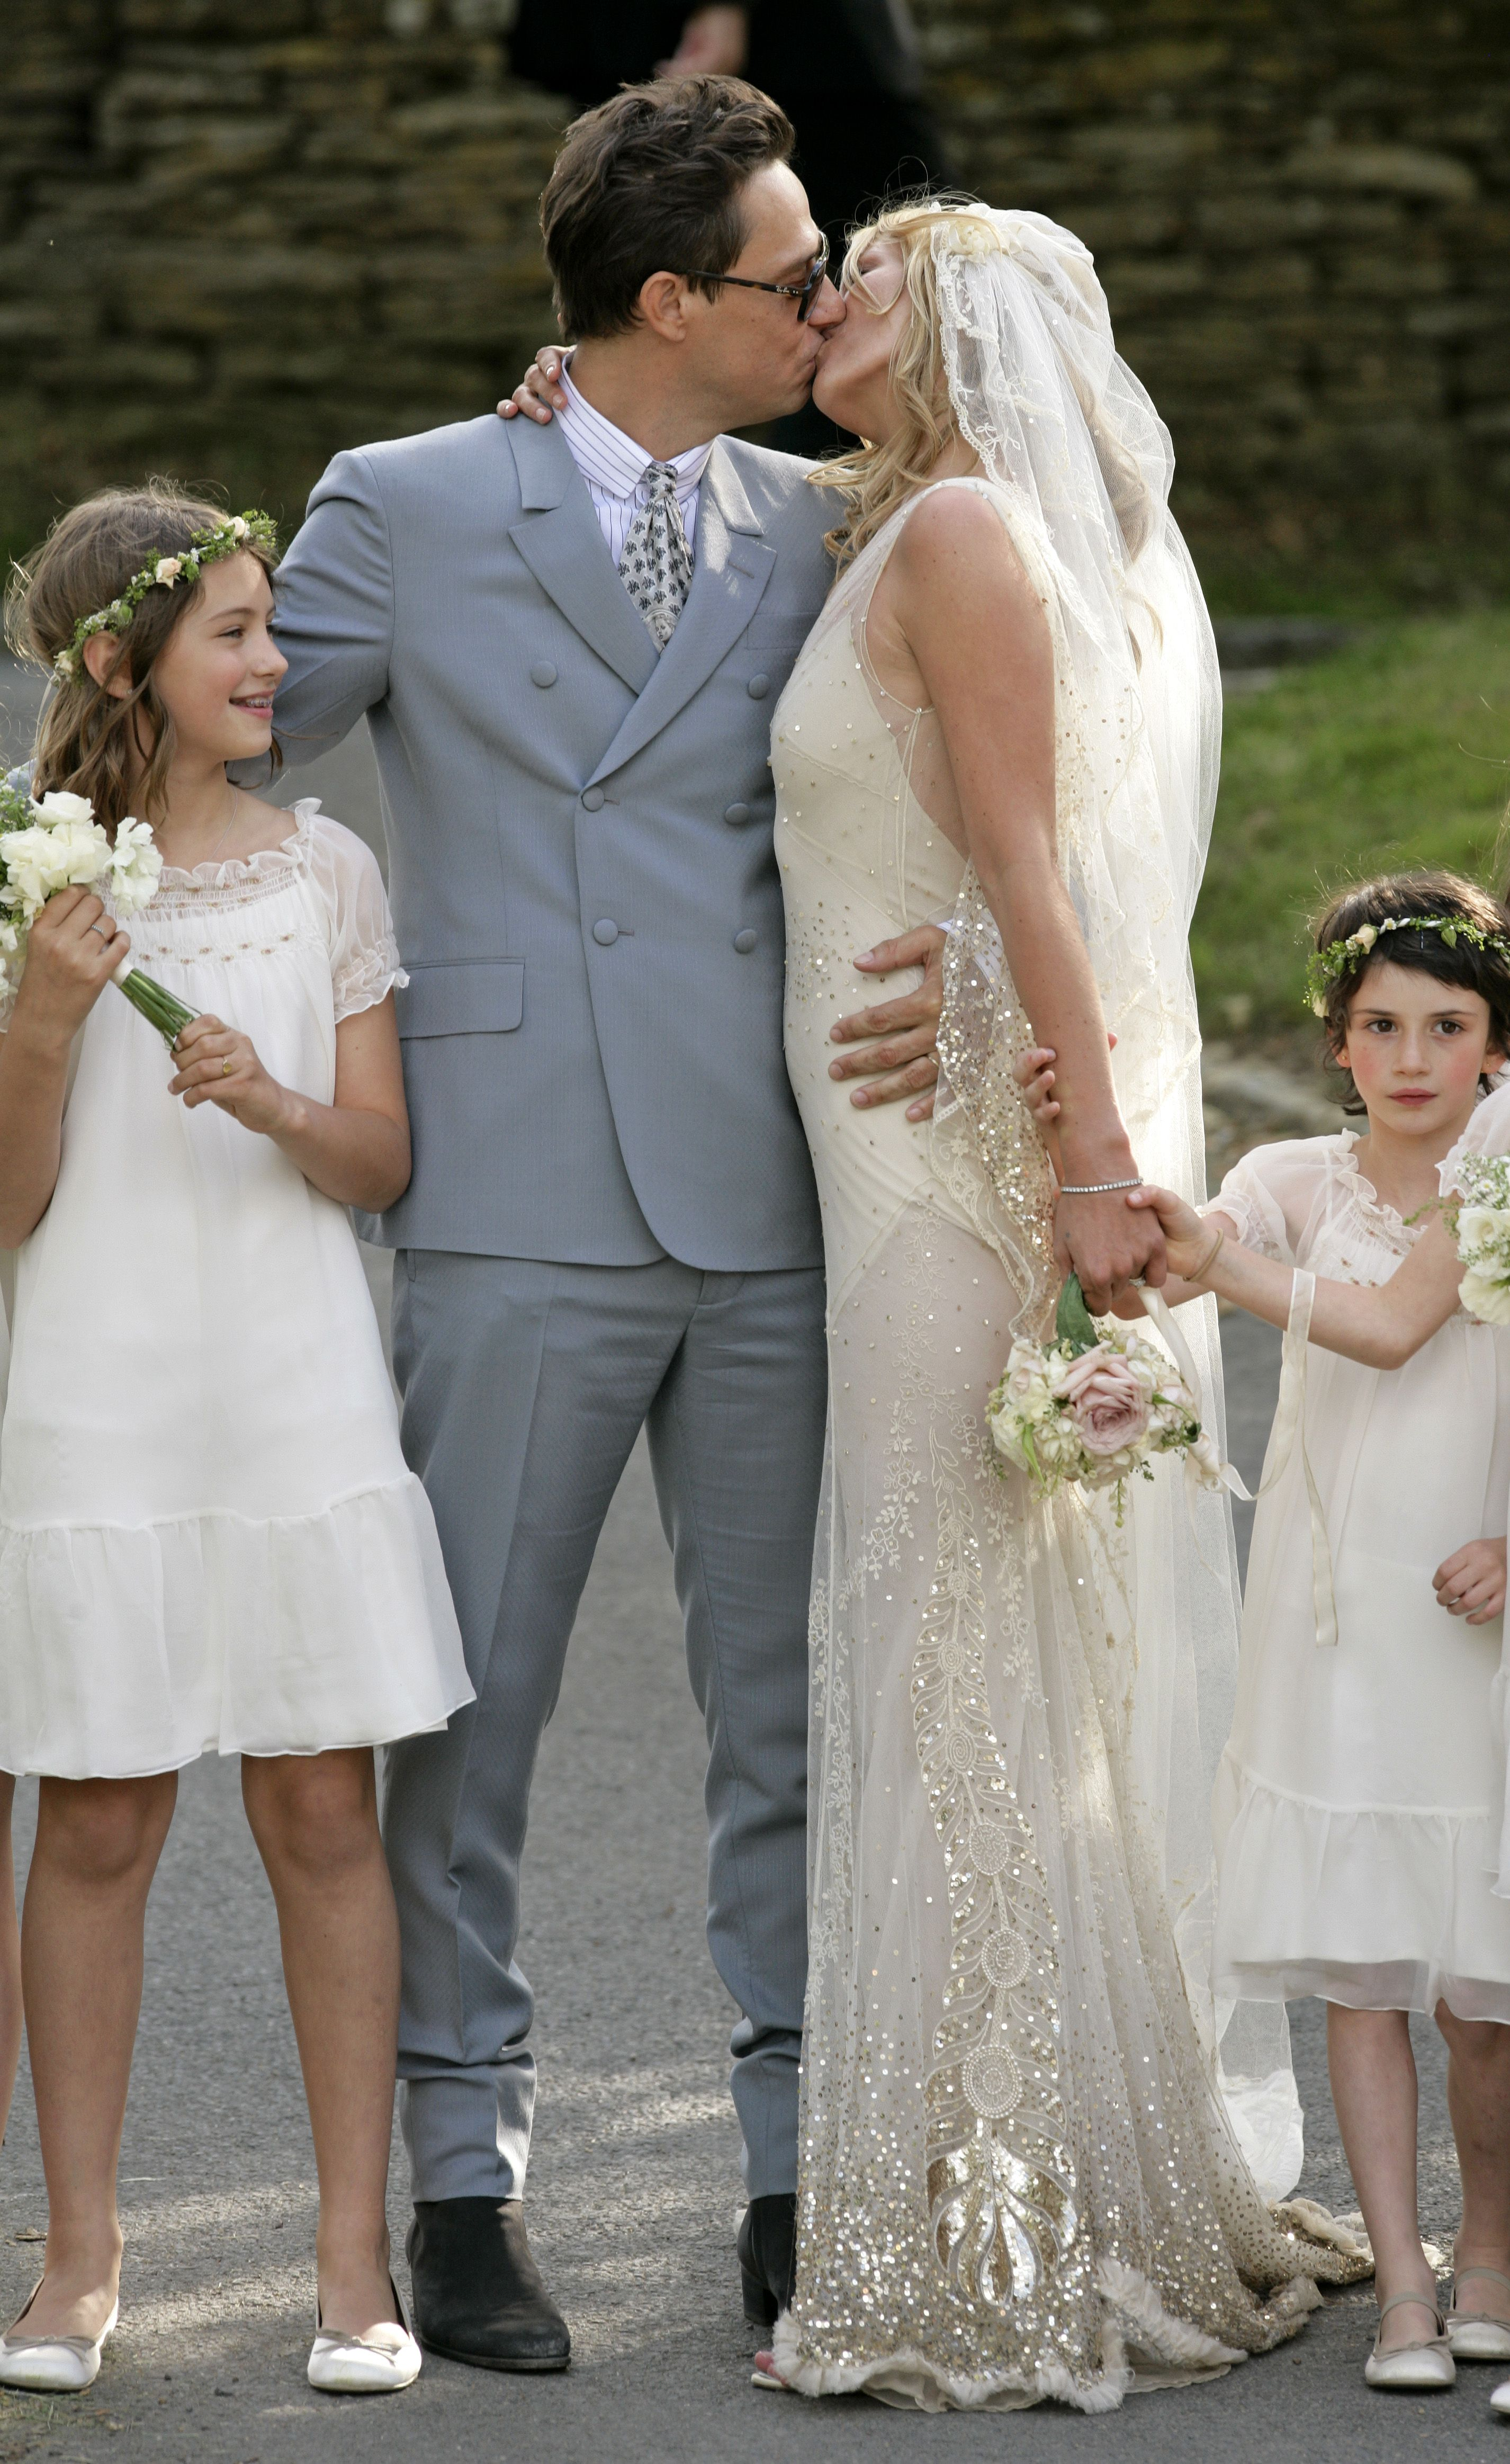 The marriage ceremony of Kate Moss was held in the small old church of St. Margaret 07/02/2011 74